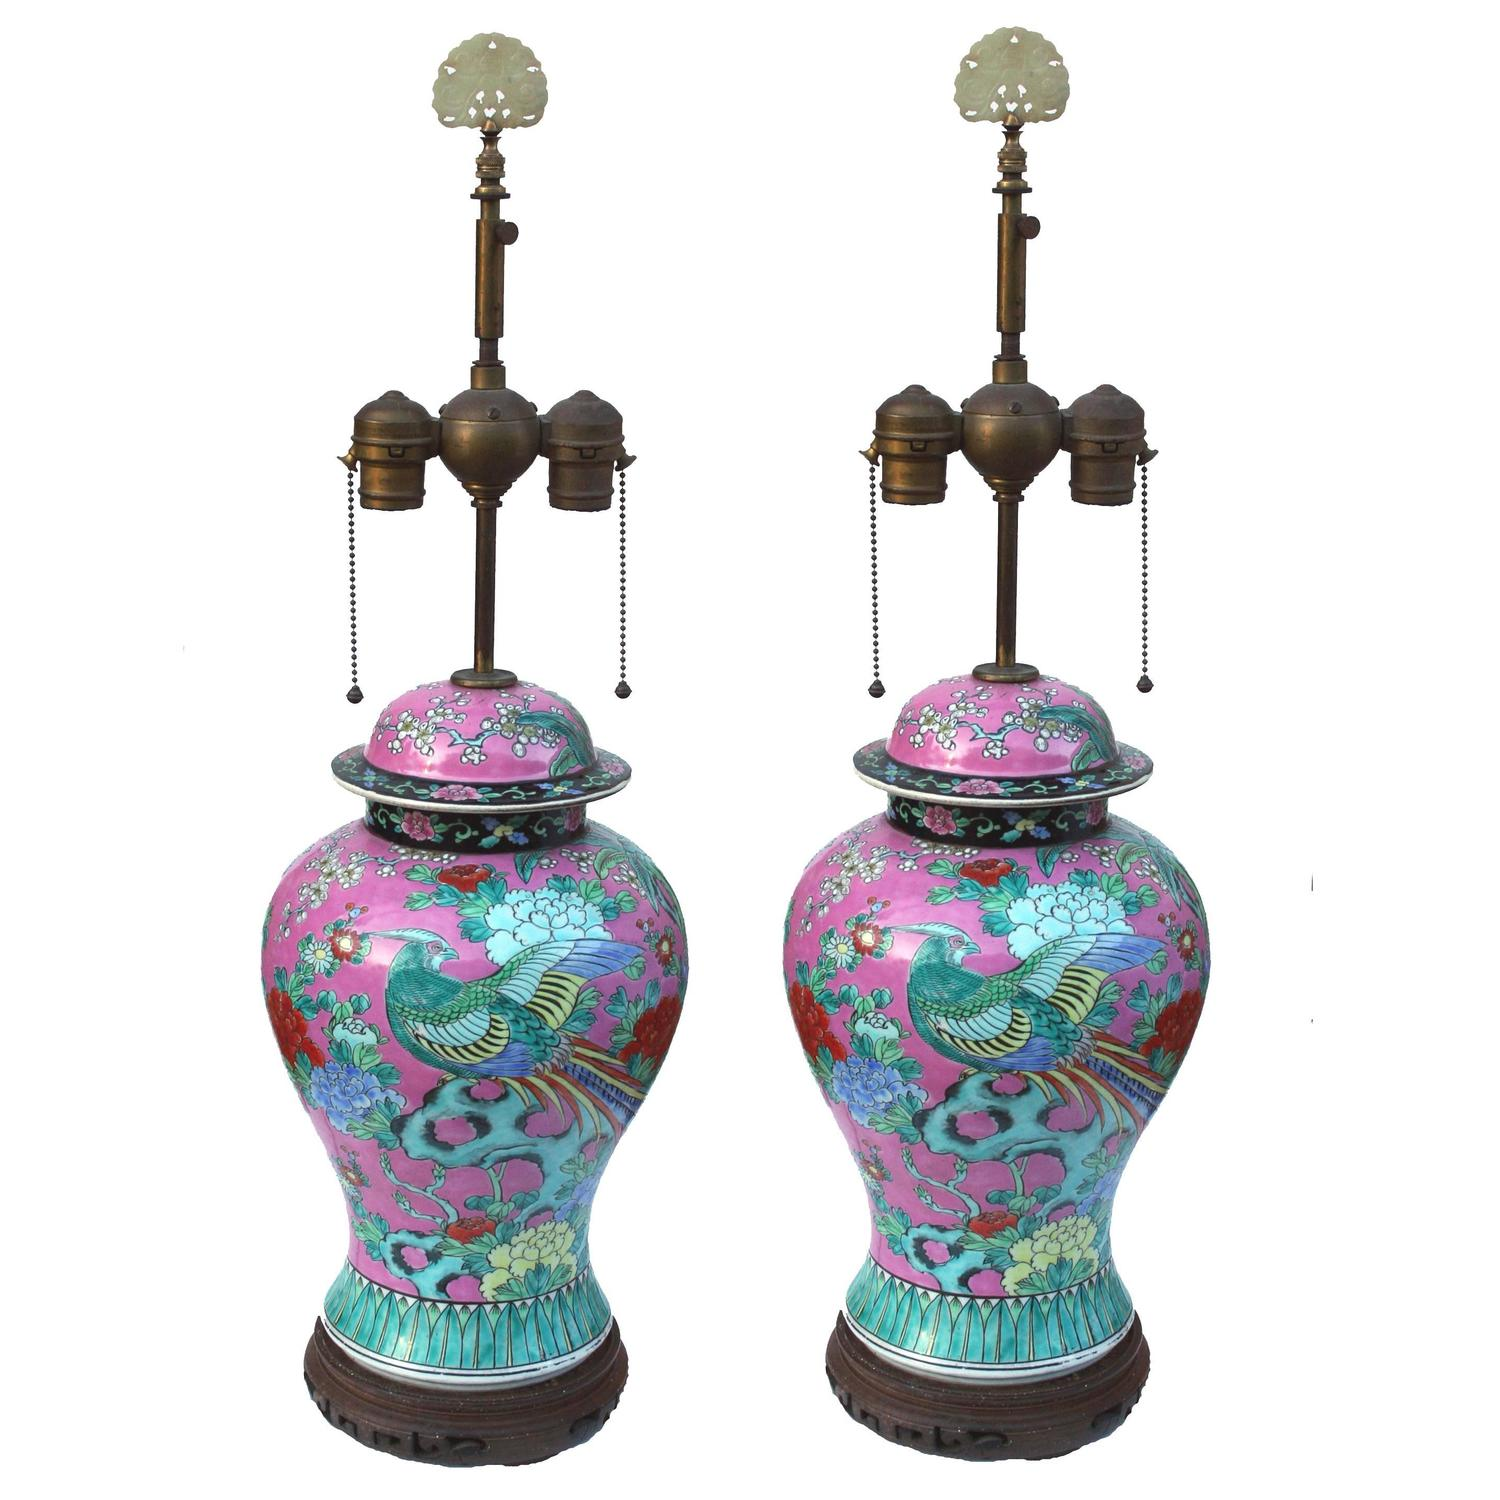 19th century famille rose ginger jar table lamps with bird and flowers. Black Bedroom Furniture Sets. Home Design Ideas